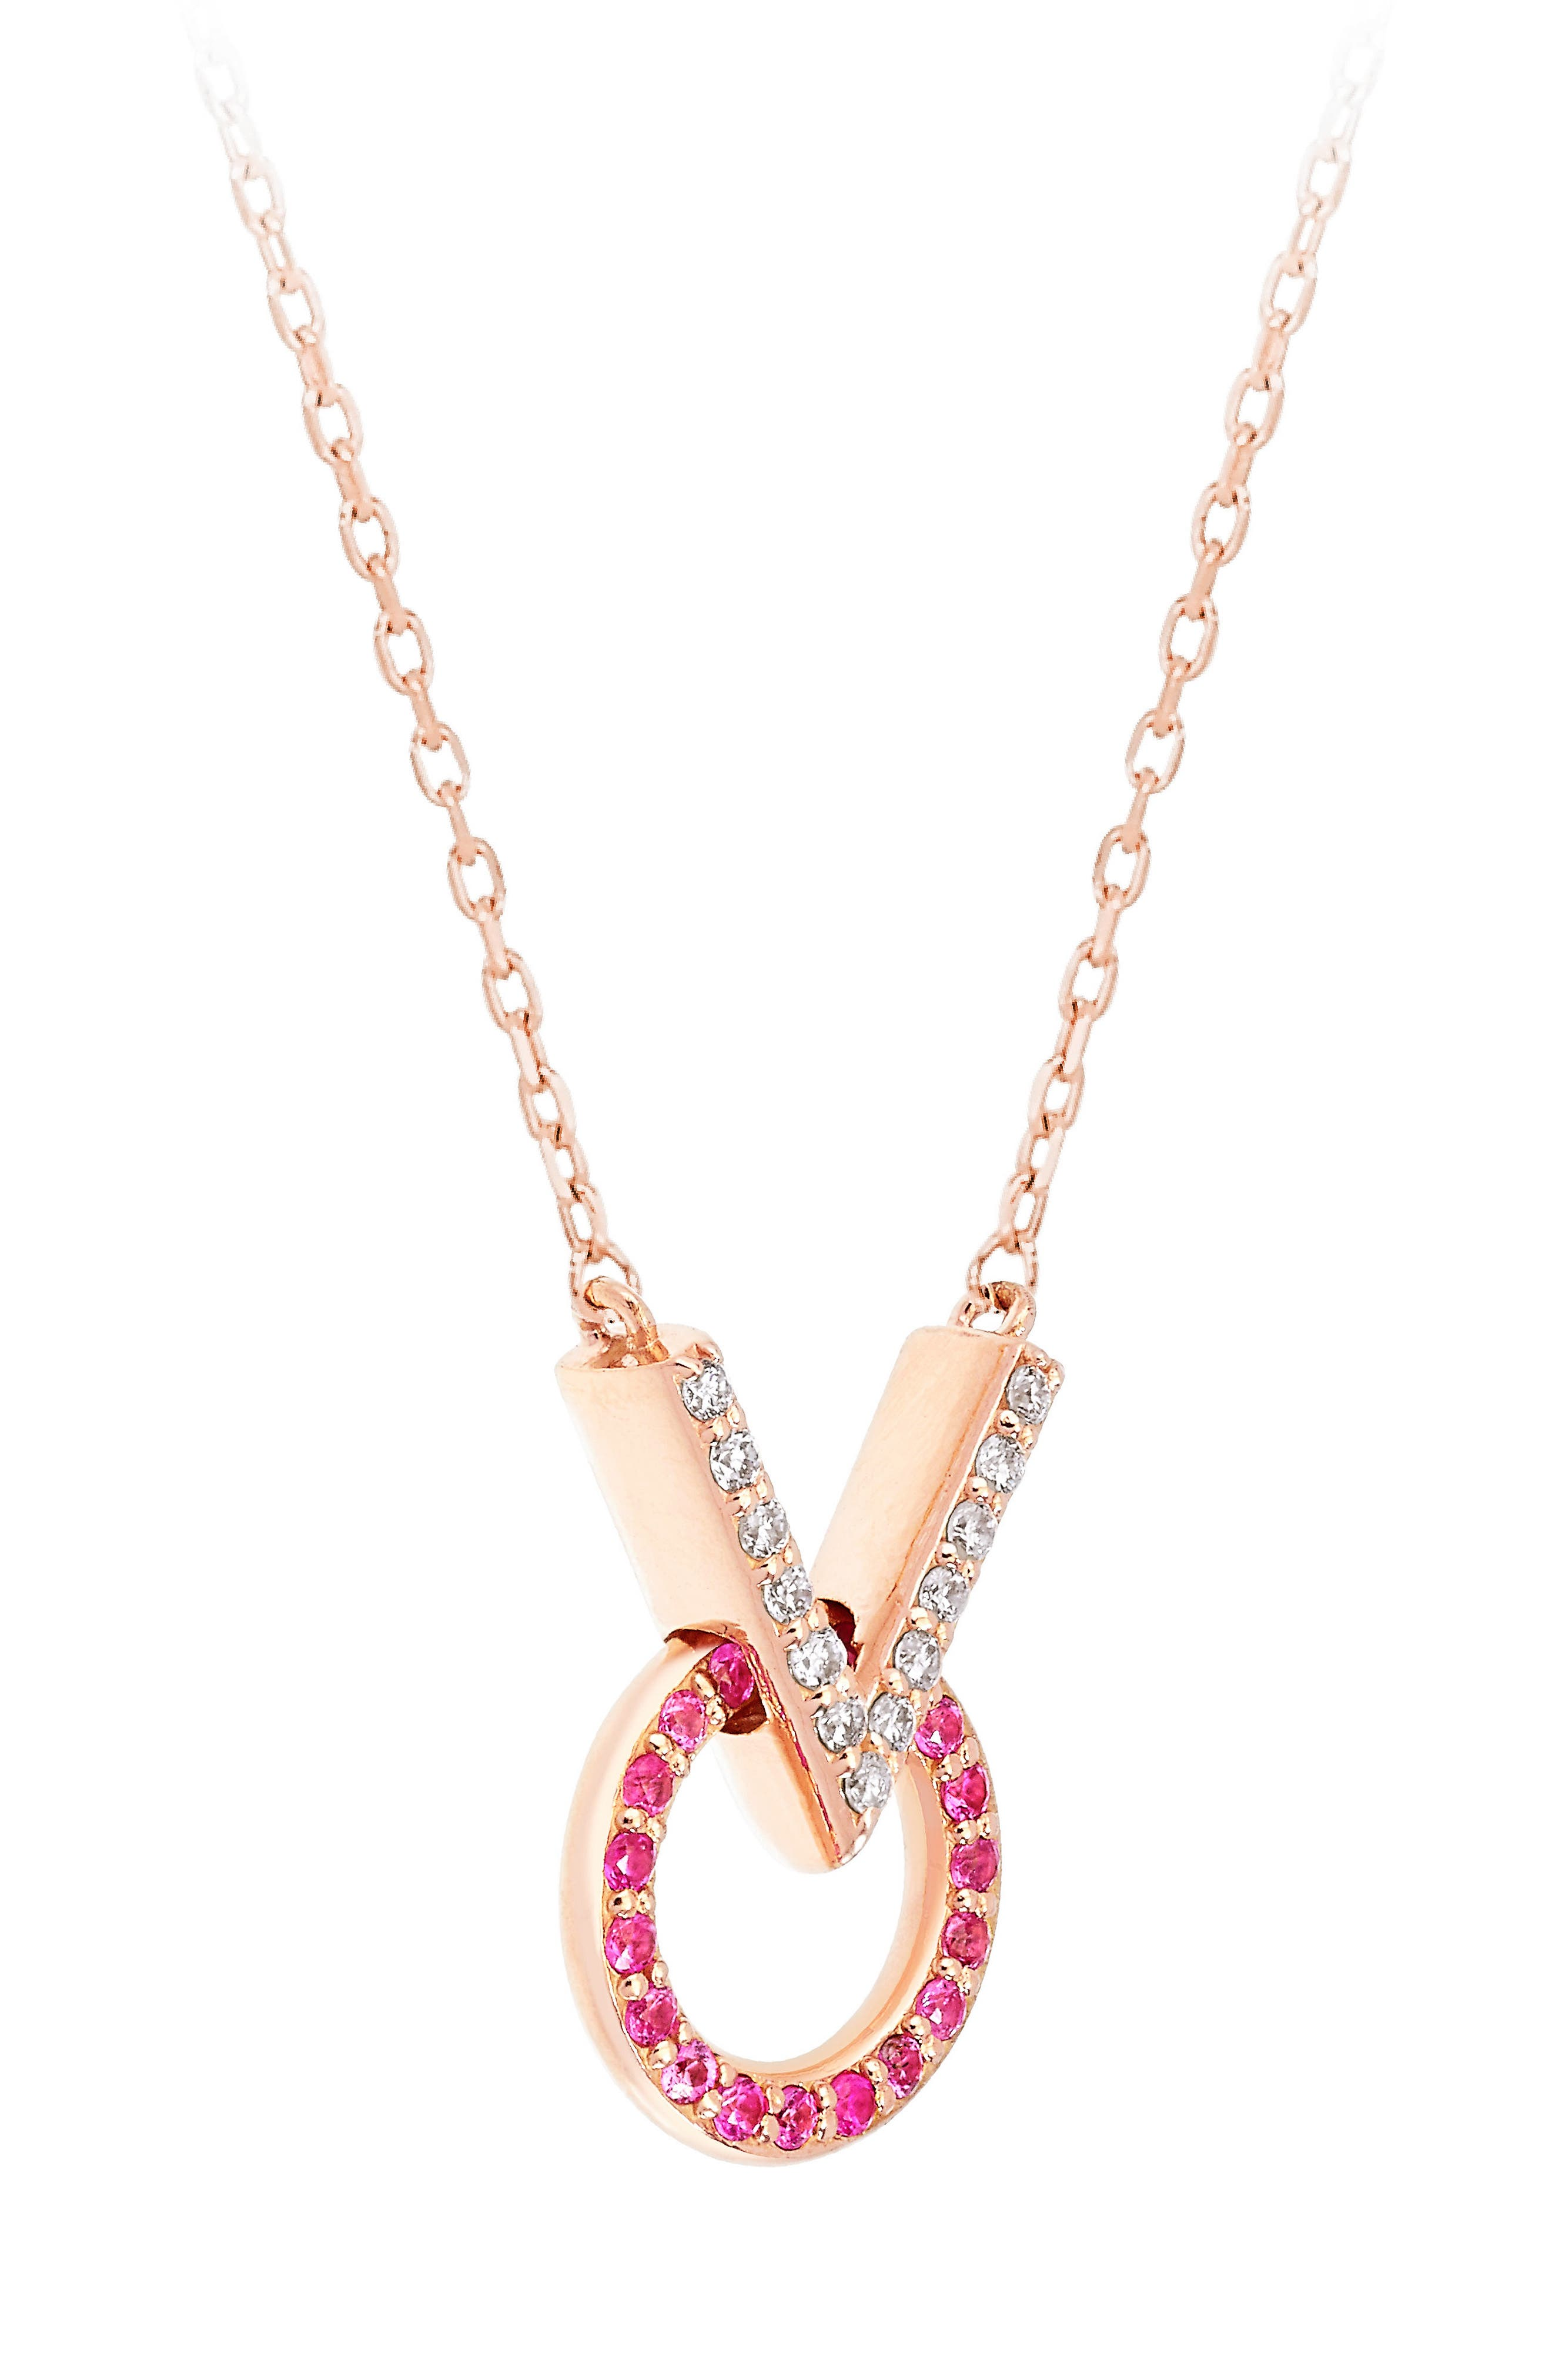 Sabine Getty V Round Diamond and Sapphire Necklace 3lqyX